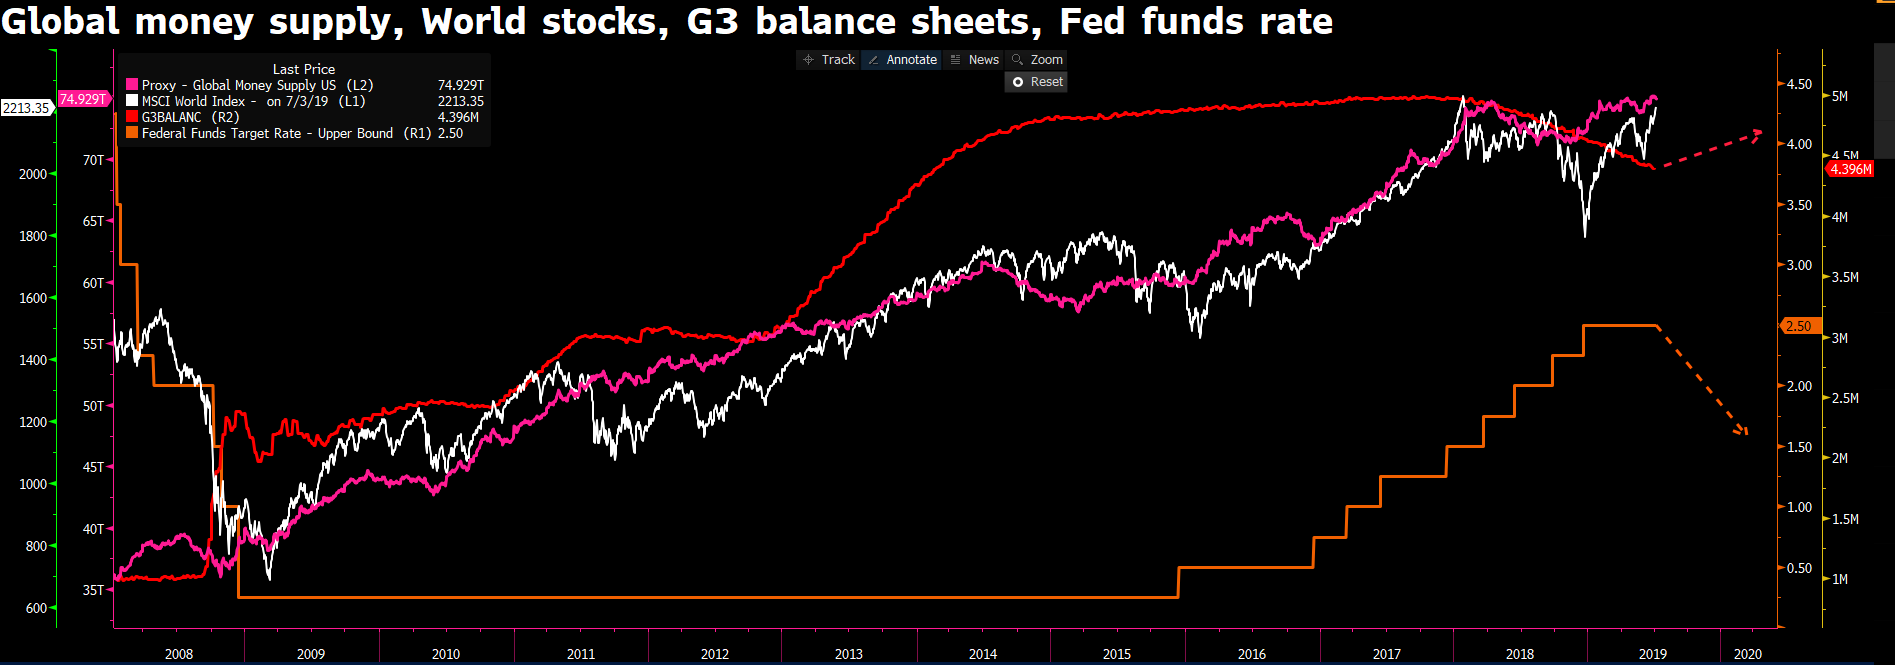 Global money supply, world stocks, G3 balance sheets and Fed funds rate